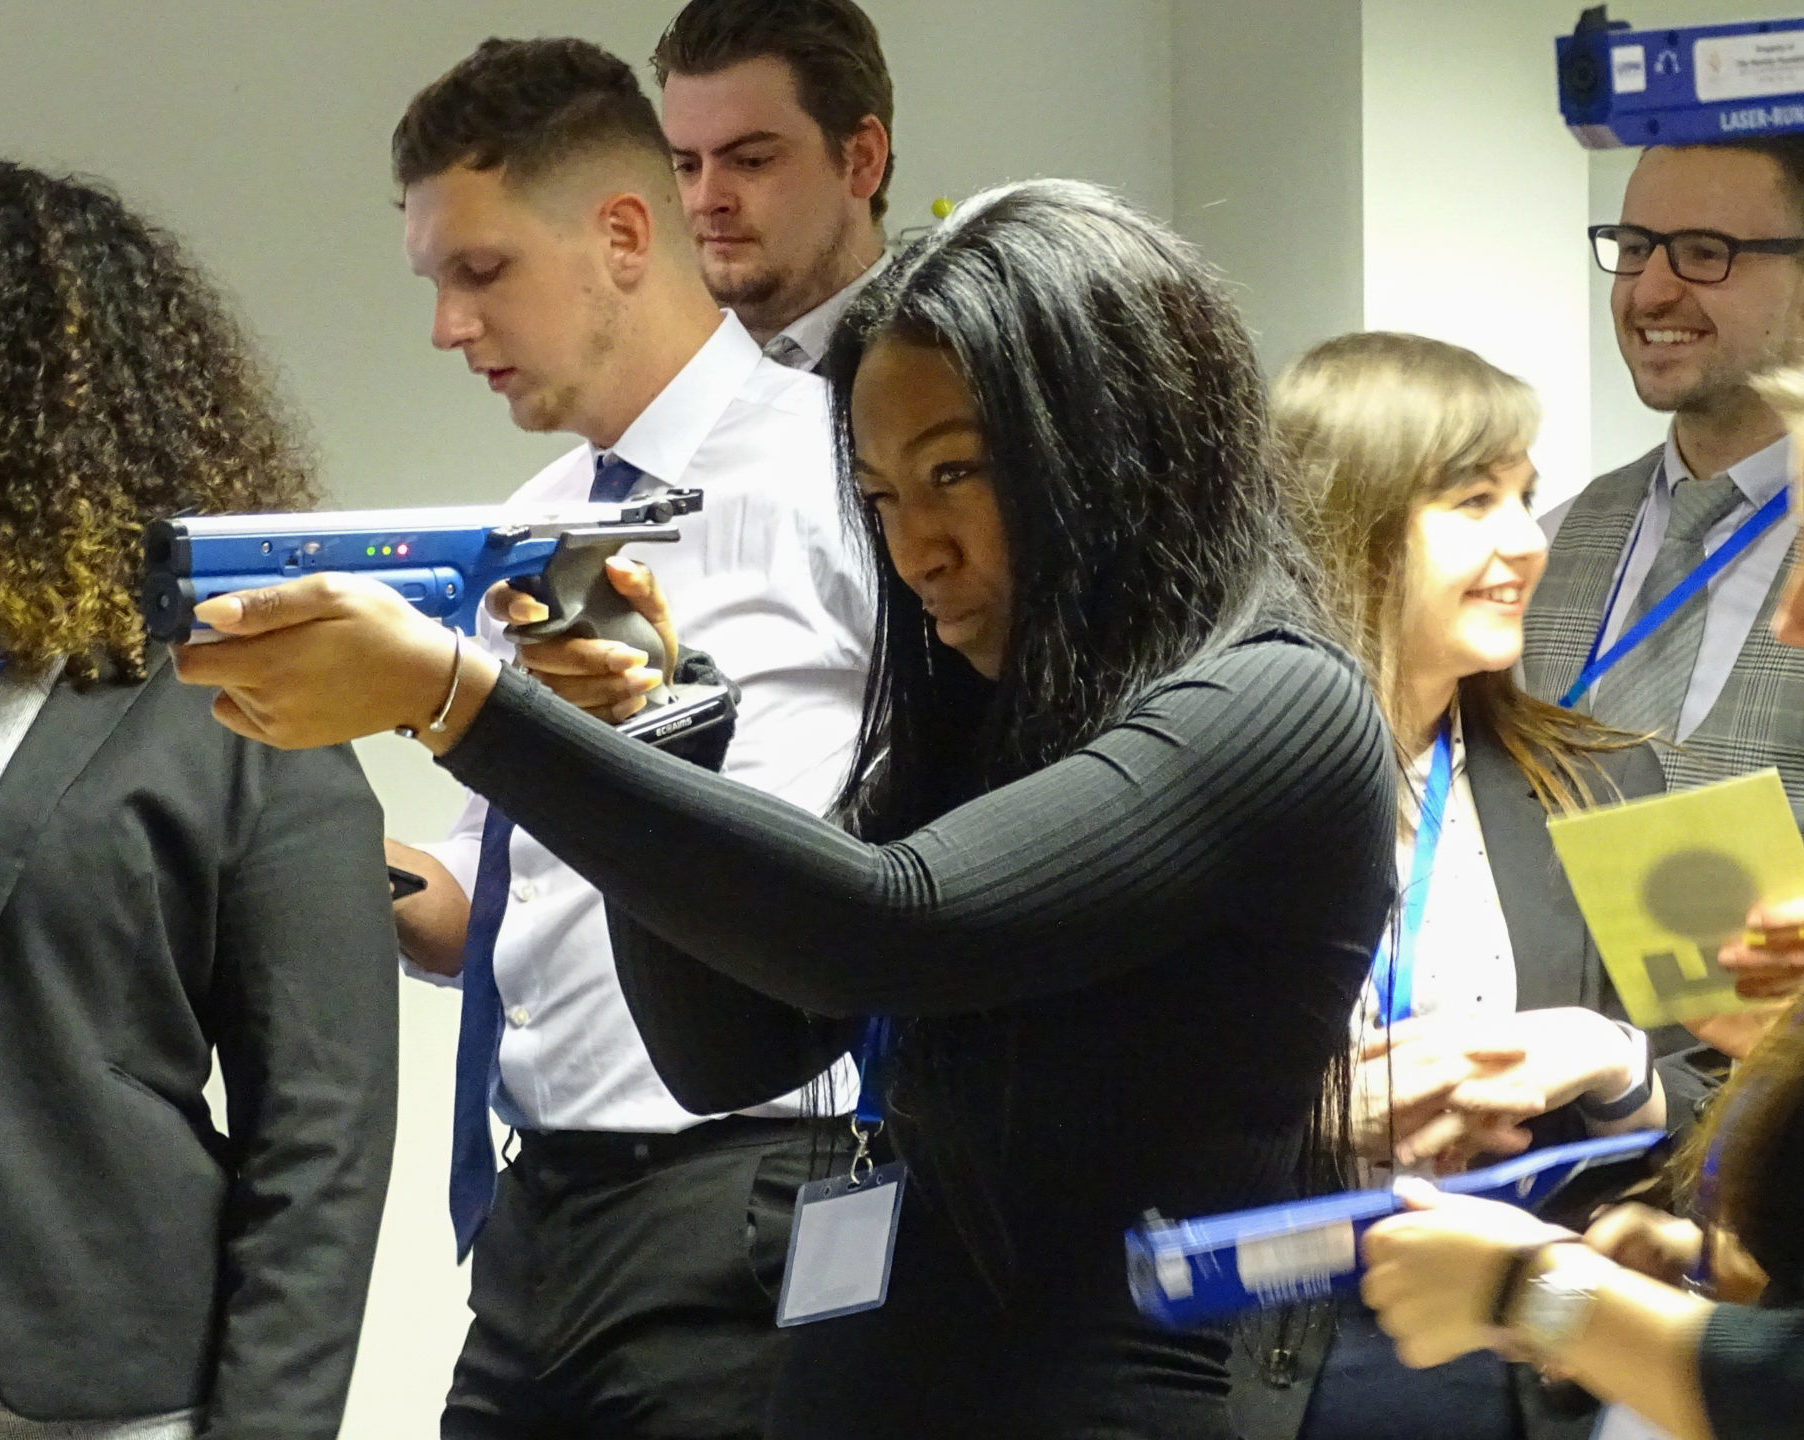 Take off 2020 gun girl at apprenticeship event